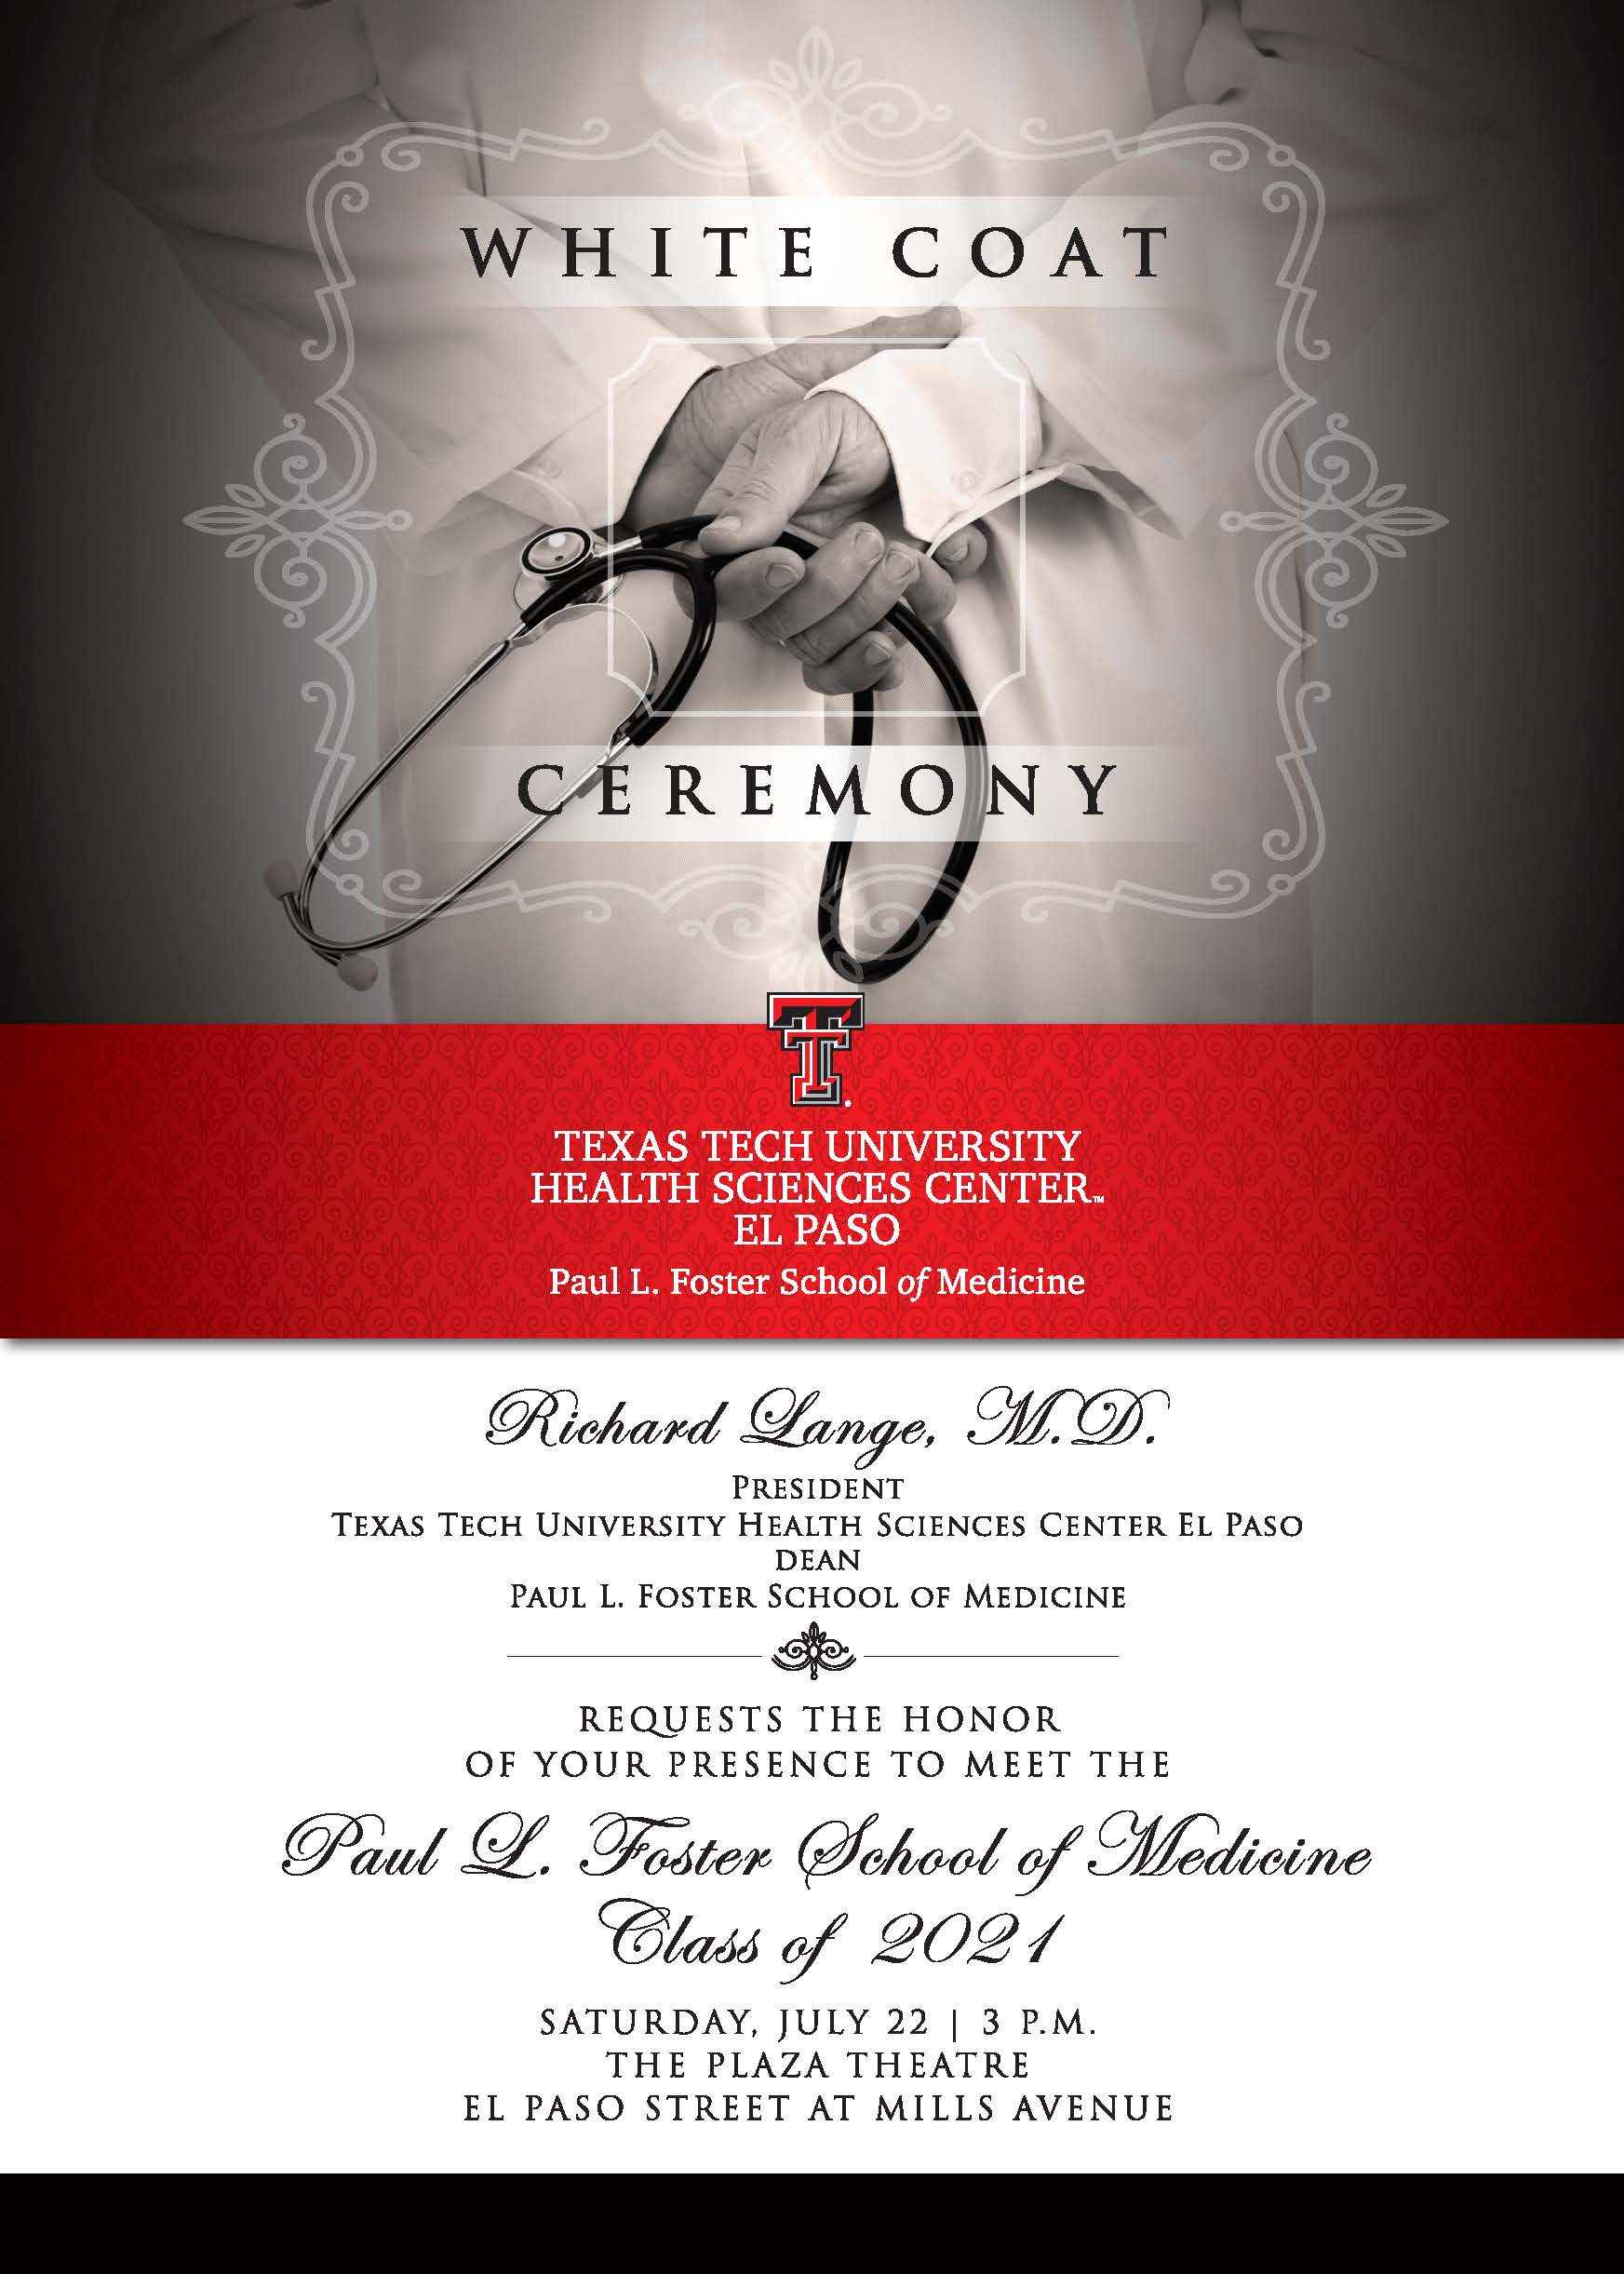 White Coat Ceremony - July 22 intended for Texas Tech Calendar For 2021 -2020